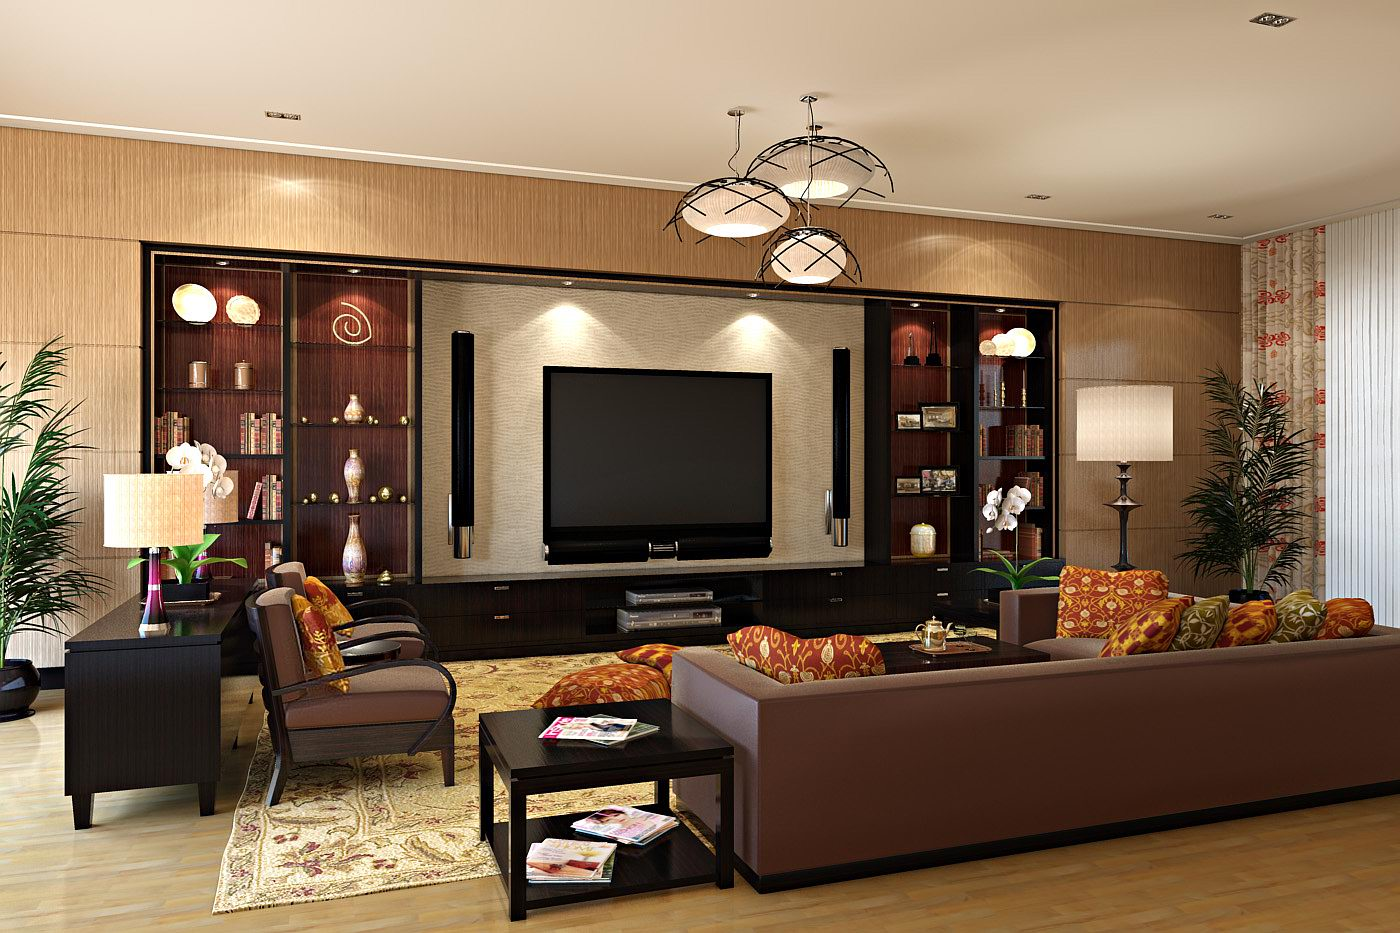 Living Room Decorating Ideas With Entertainment Center ~ Decorzt